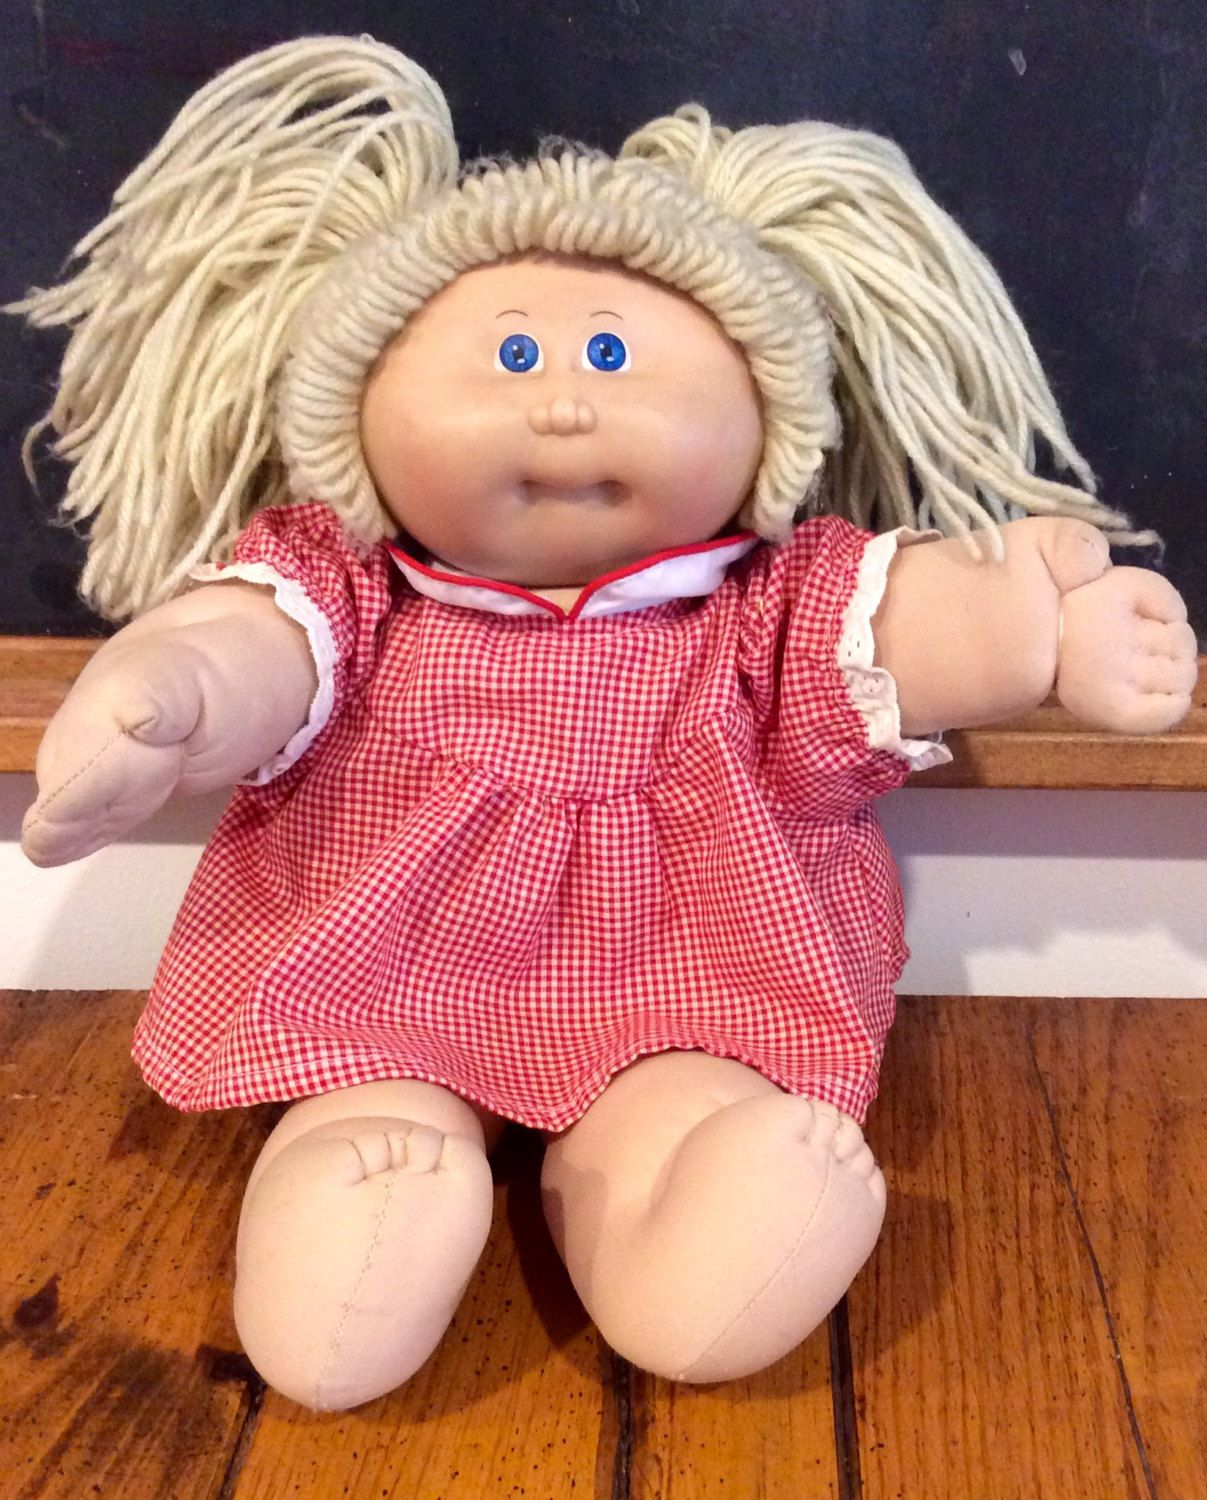 1980s Cabbage Patch Kids Blonde Hair Blue Eyed Girl Coleco Cpk Oaa Cabbage Patch Kid Vintage Cabbage Patch Kids Cabbage Patch Kids Blue Eyed Girls Blue Hair